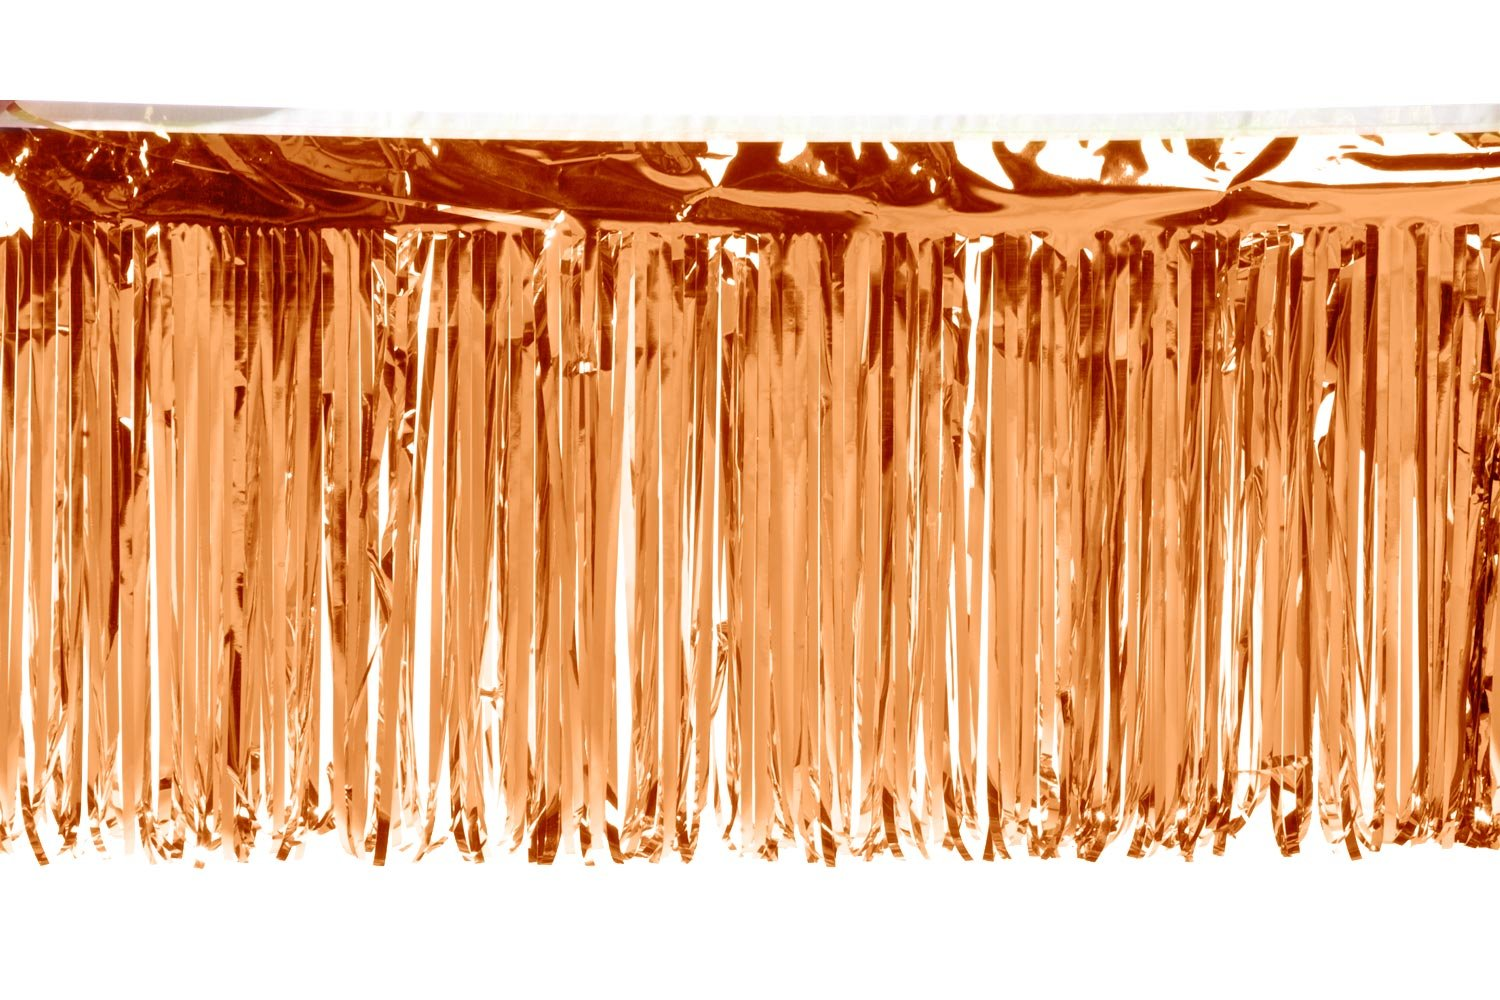 15 x 10 Roll of Decorating Material for Parade Floats and Party Supplies Metallic Gold Fringe